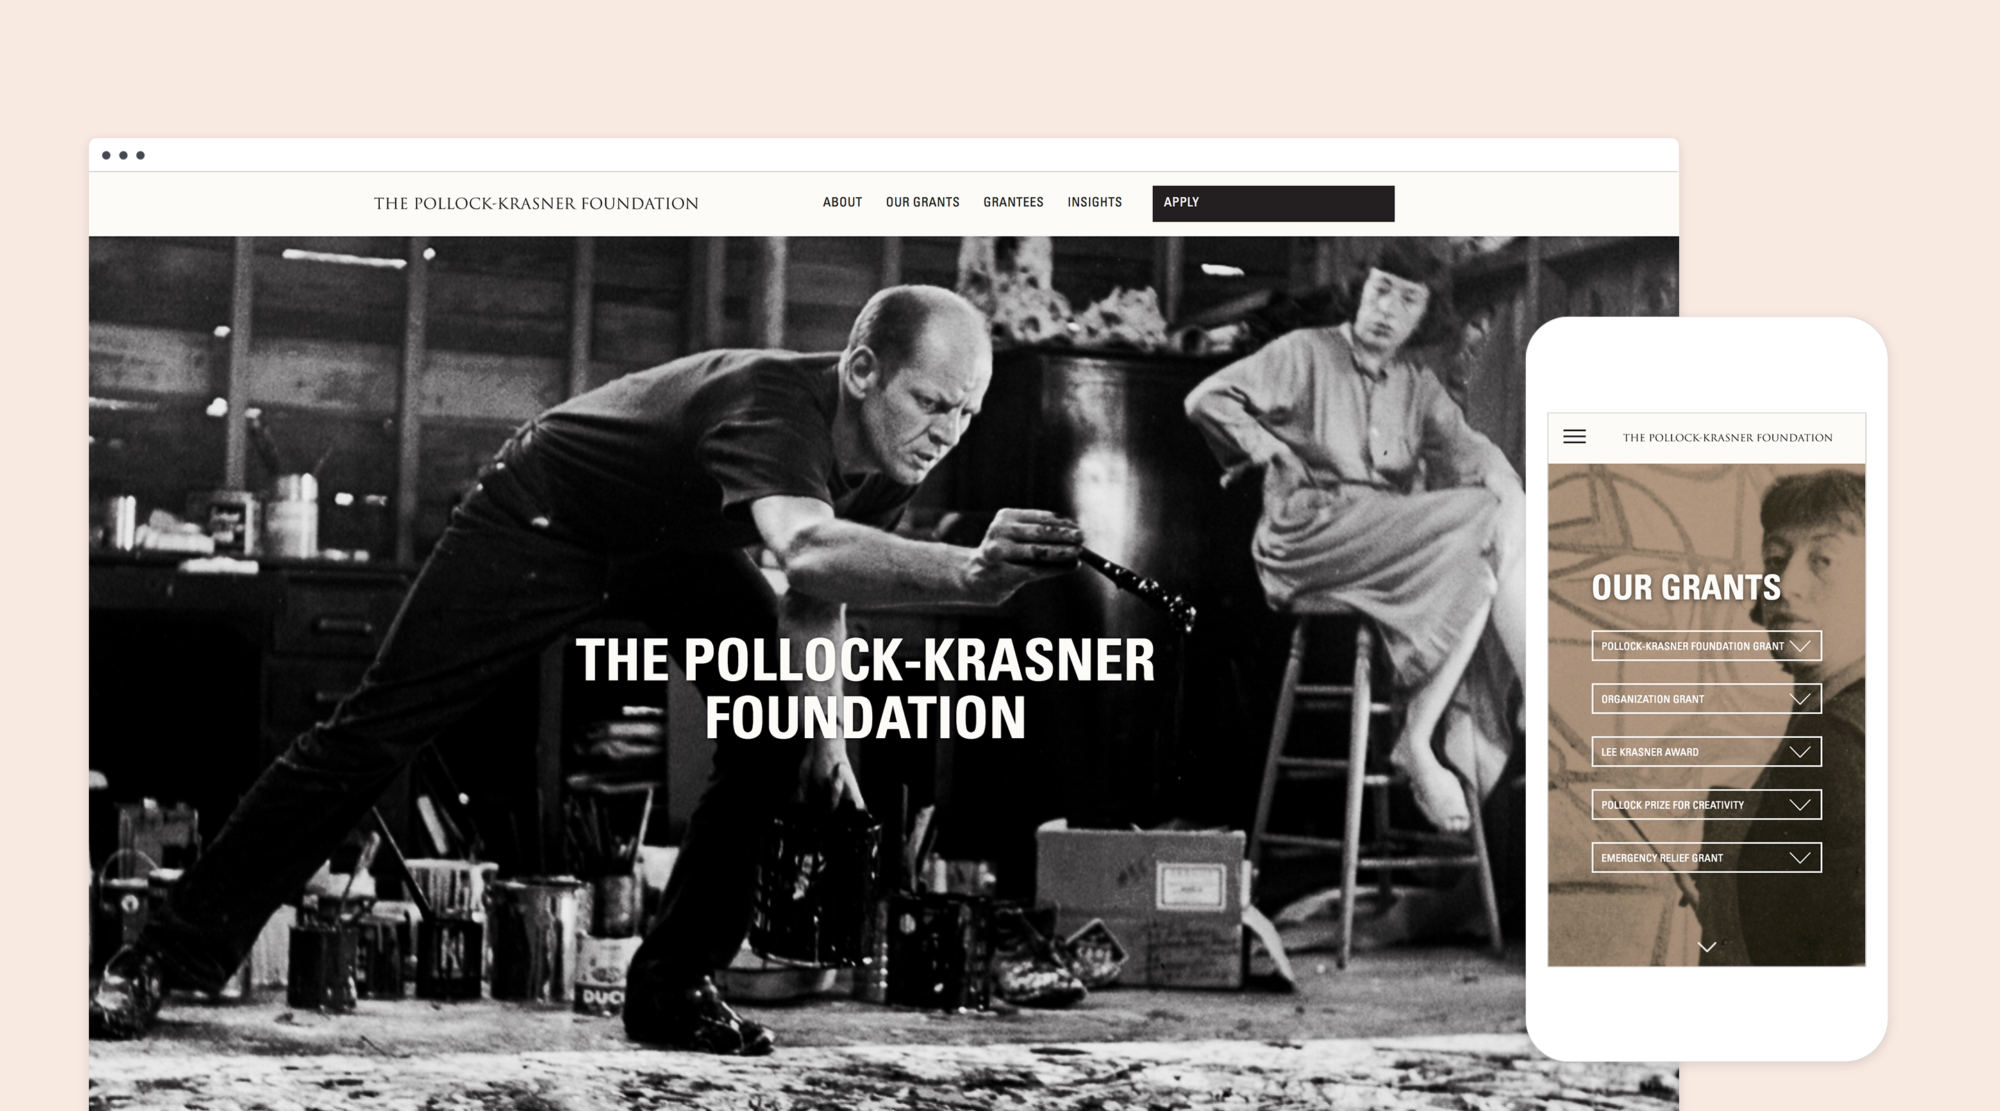 Mock up of responsive desktop and mobile design for the Pollock-Krasner Foundation's website redesign